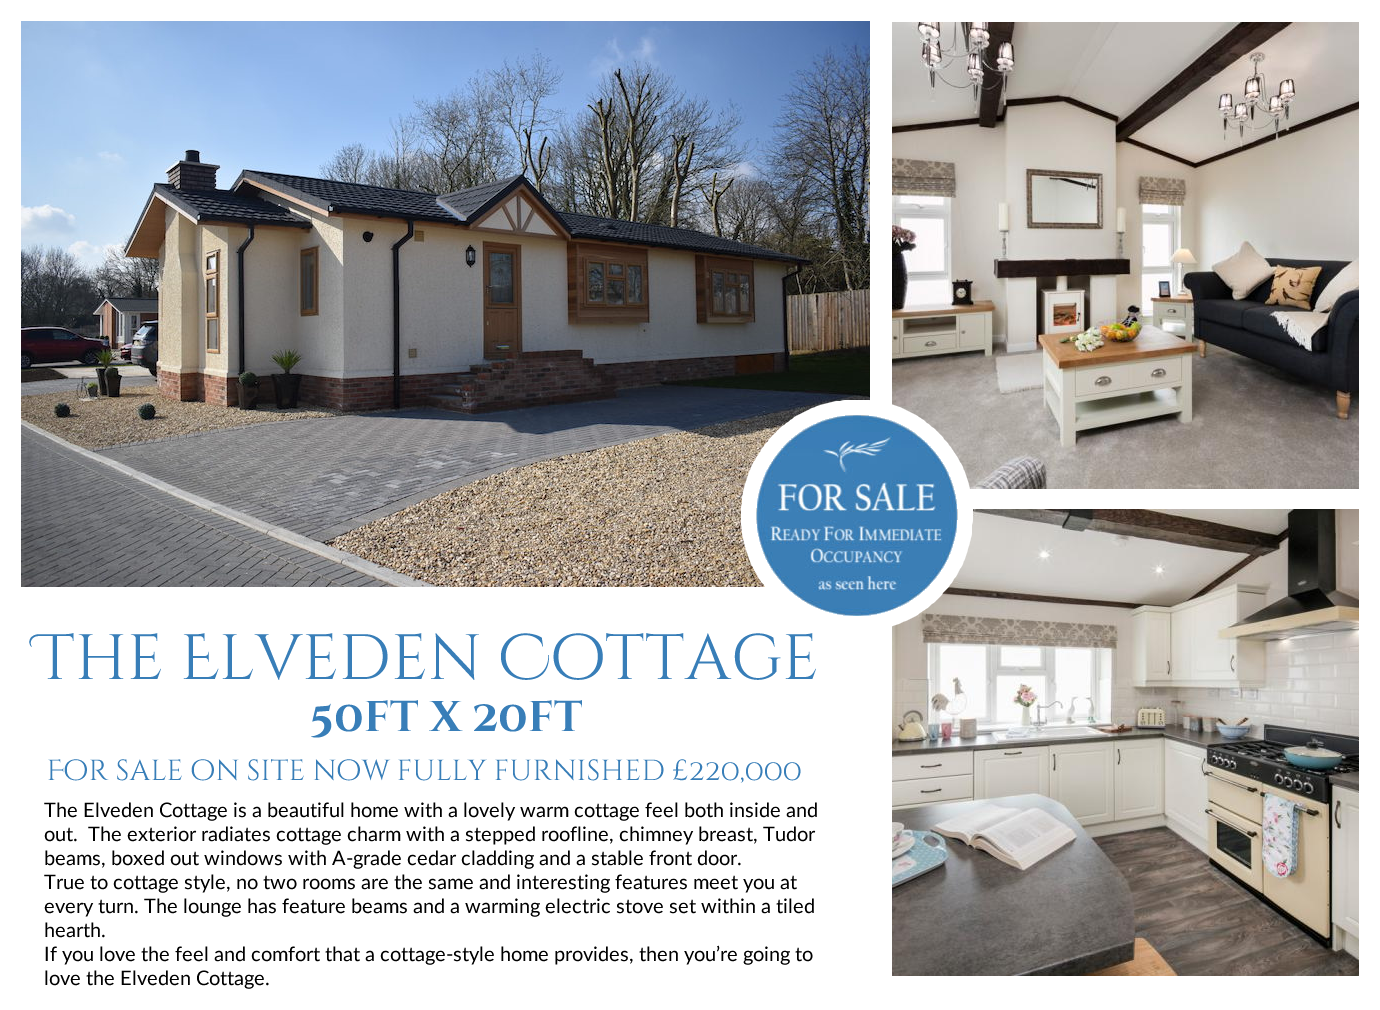 ELVEDEN COTTAGE